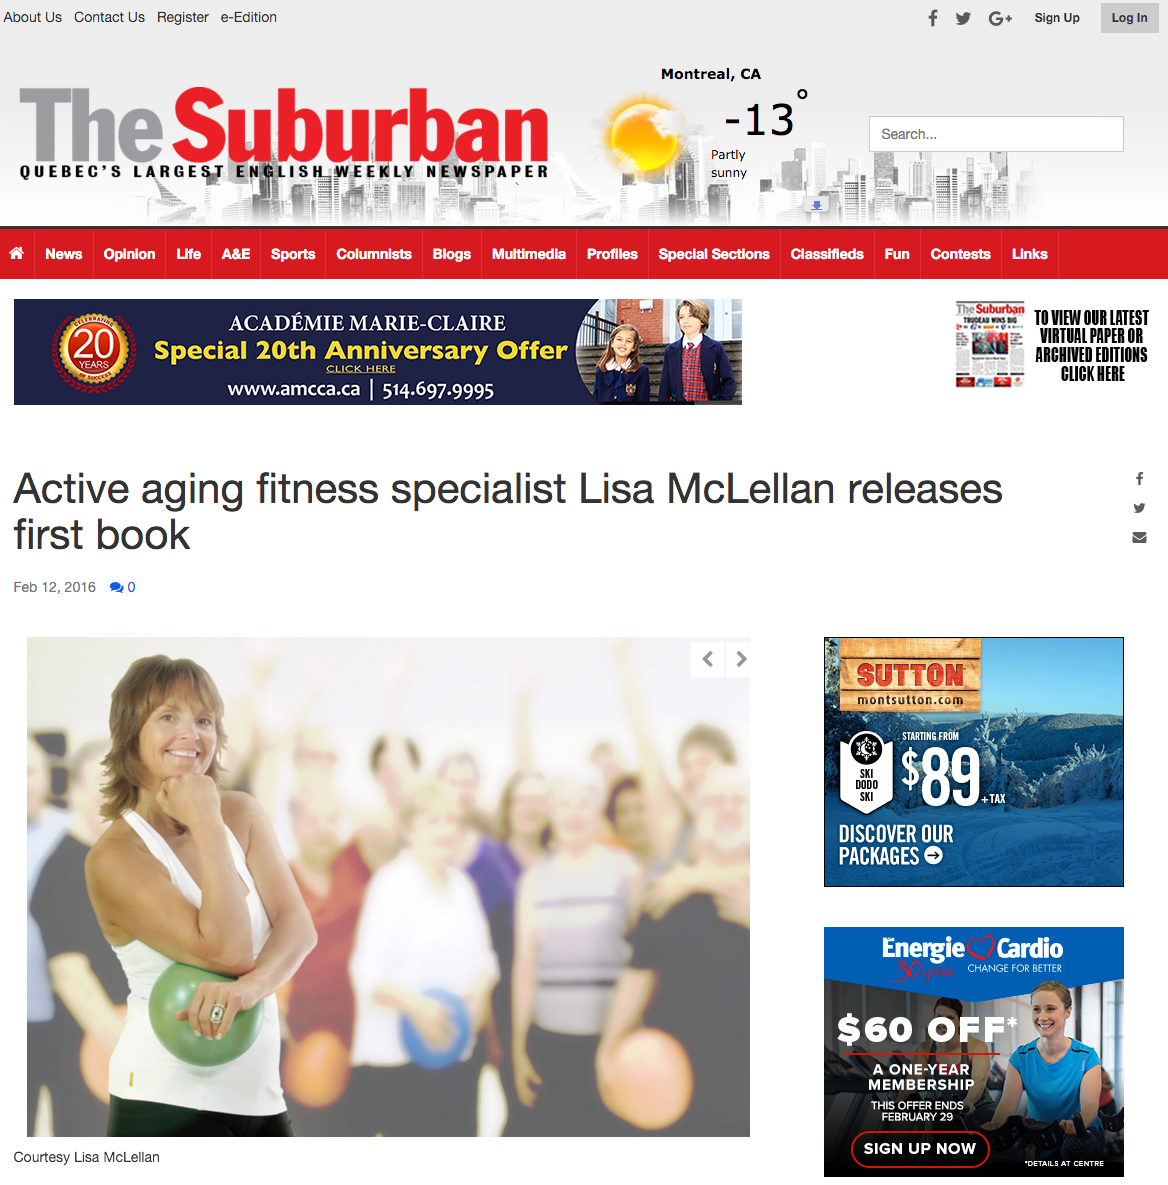 The Suburban with Lisa McLellan